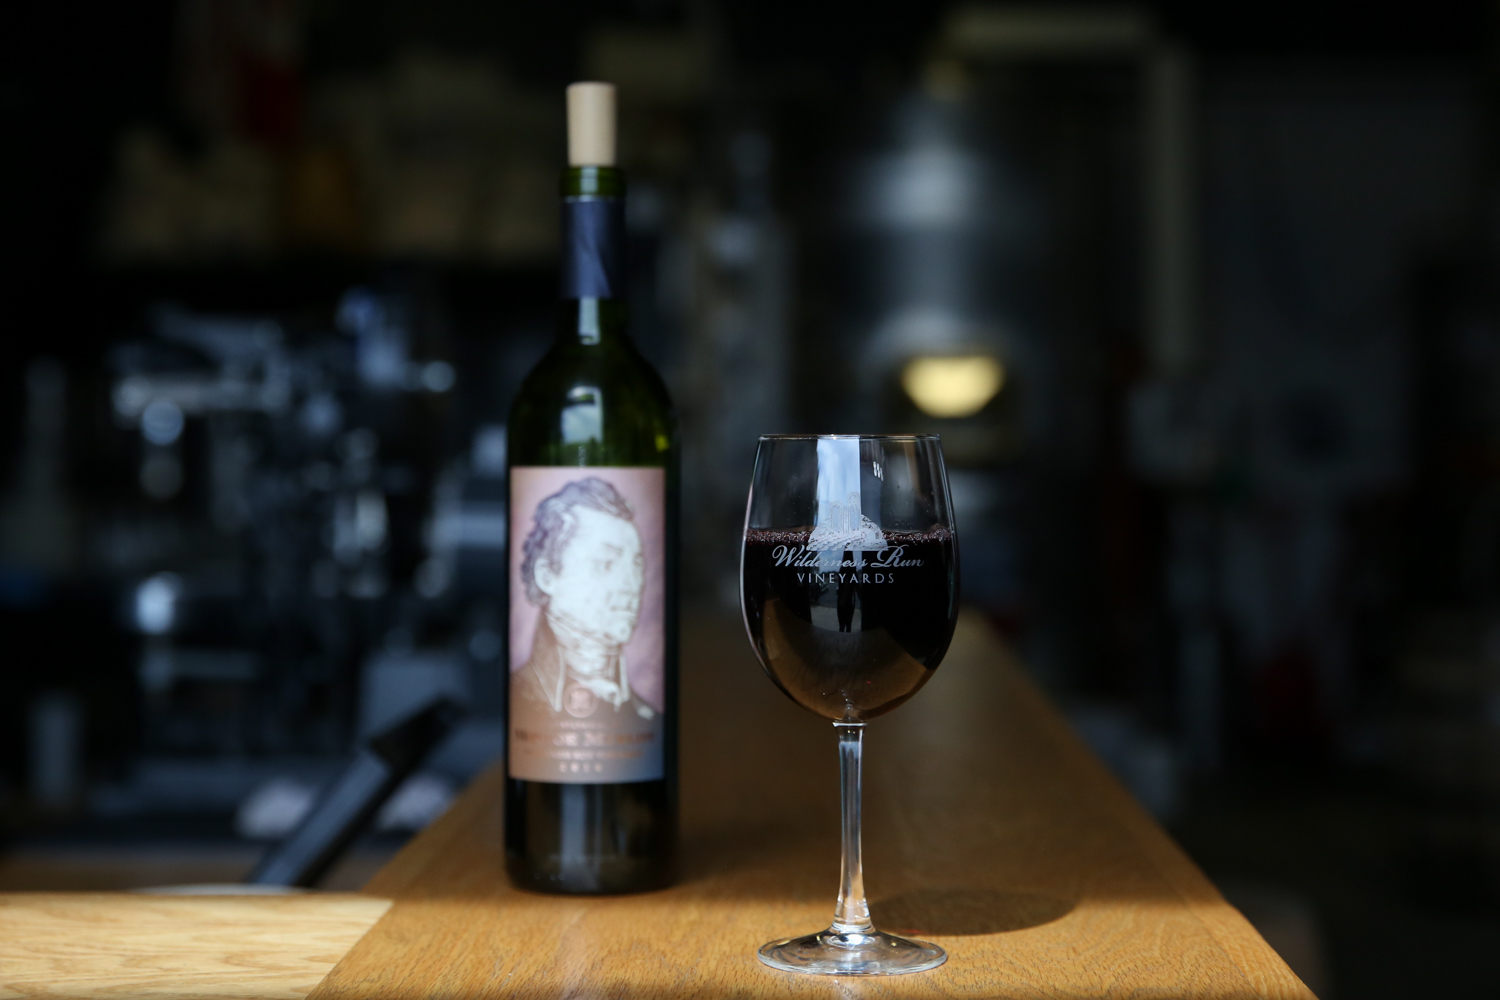 The wine (duh) -- The{ }2014 Monroe Merlot is{ } an easy, fruit forward, medium bodied wine that aged in a neutral French oak barrel for 28 months so it's as smooth as it can possibly be (Image: Amanda Andrade-Rhoades/DC Refined)